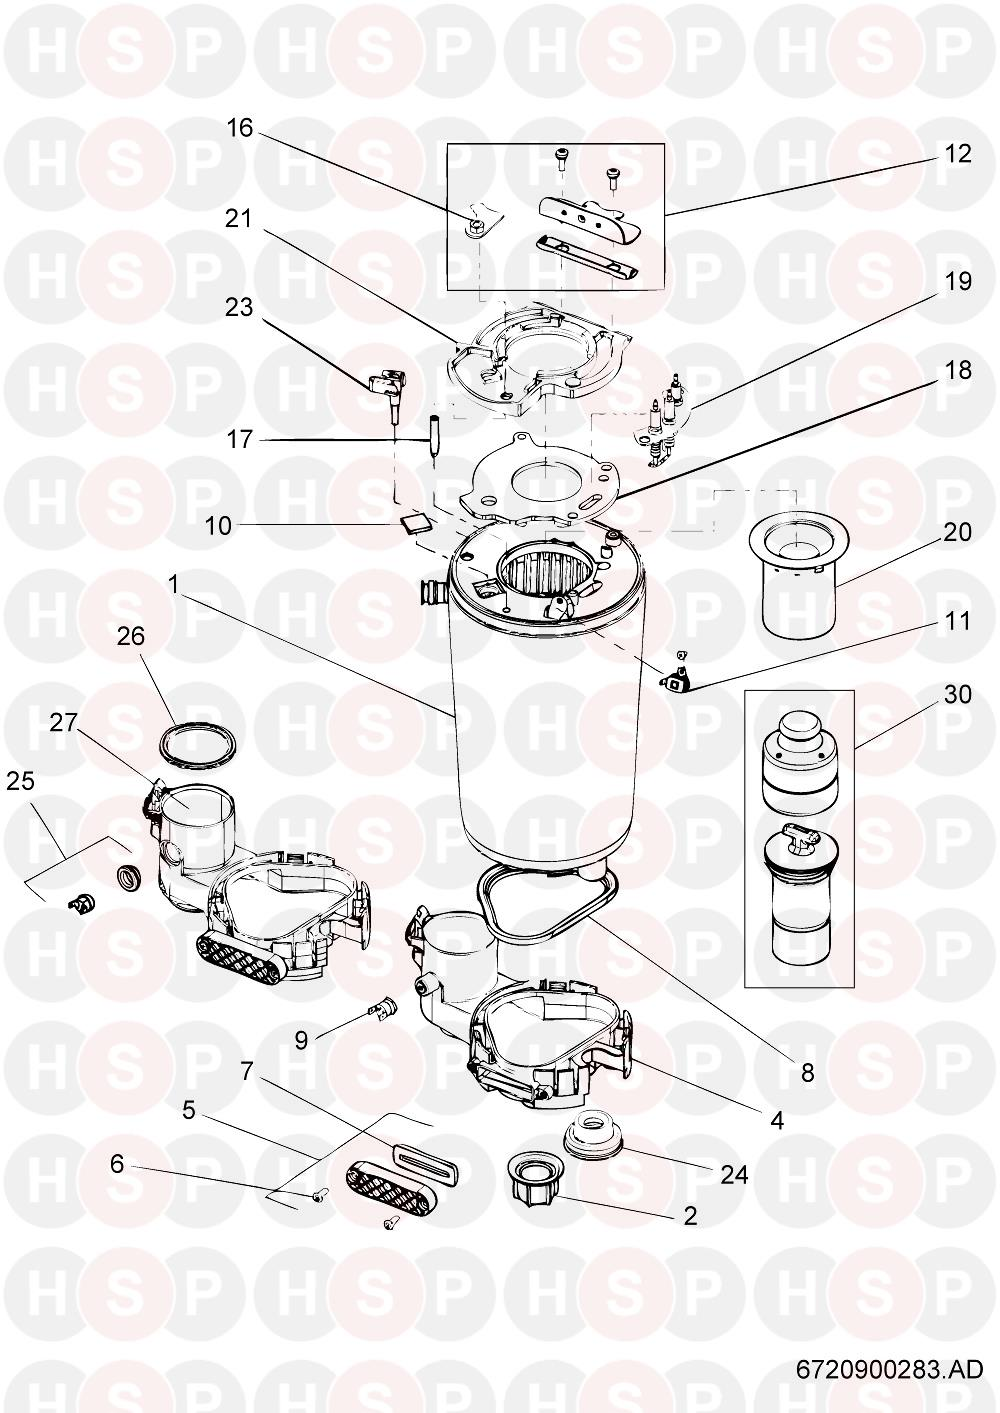 Worcester Greenstar 24 RI HE (HEAT EXCHANGER) Diagram